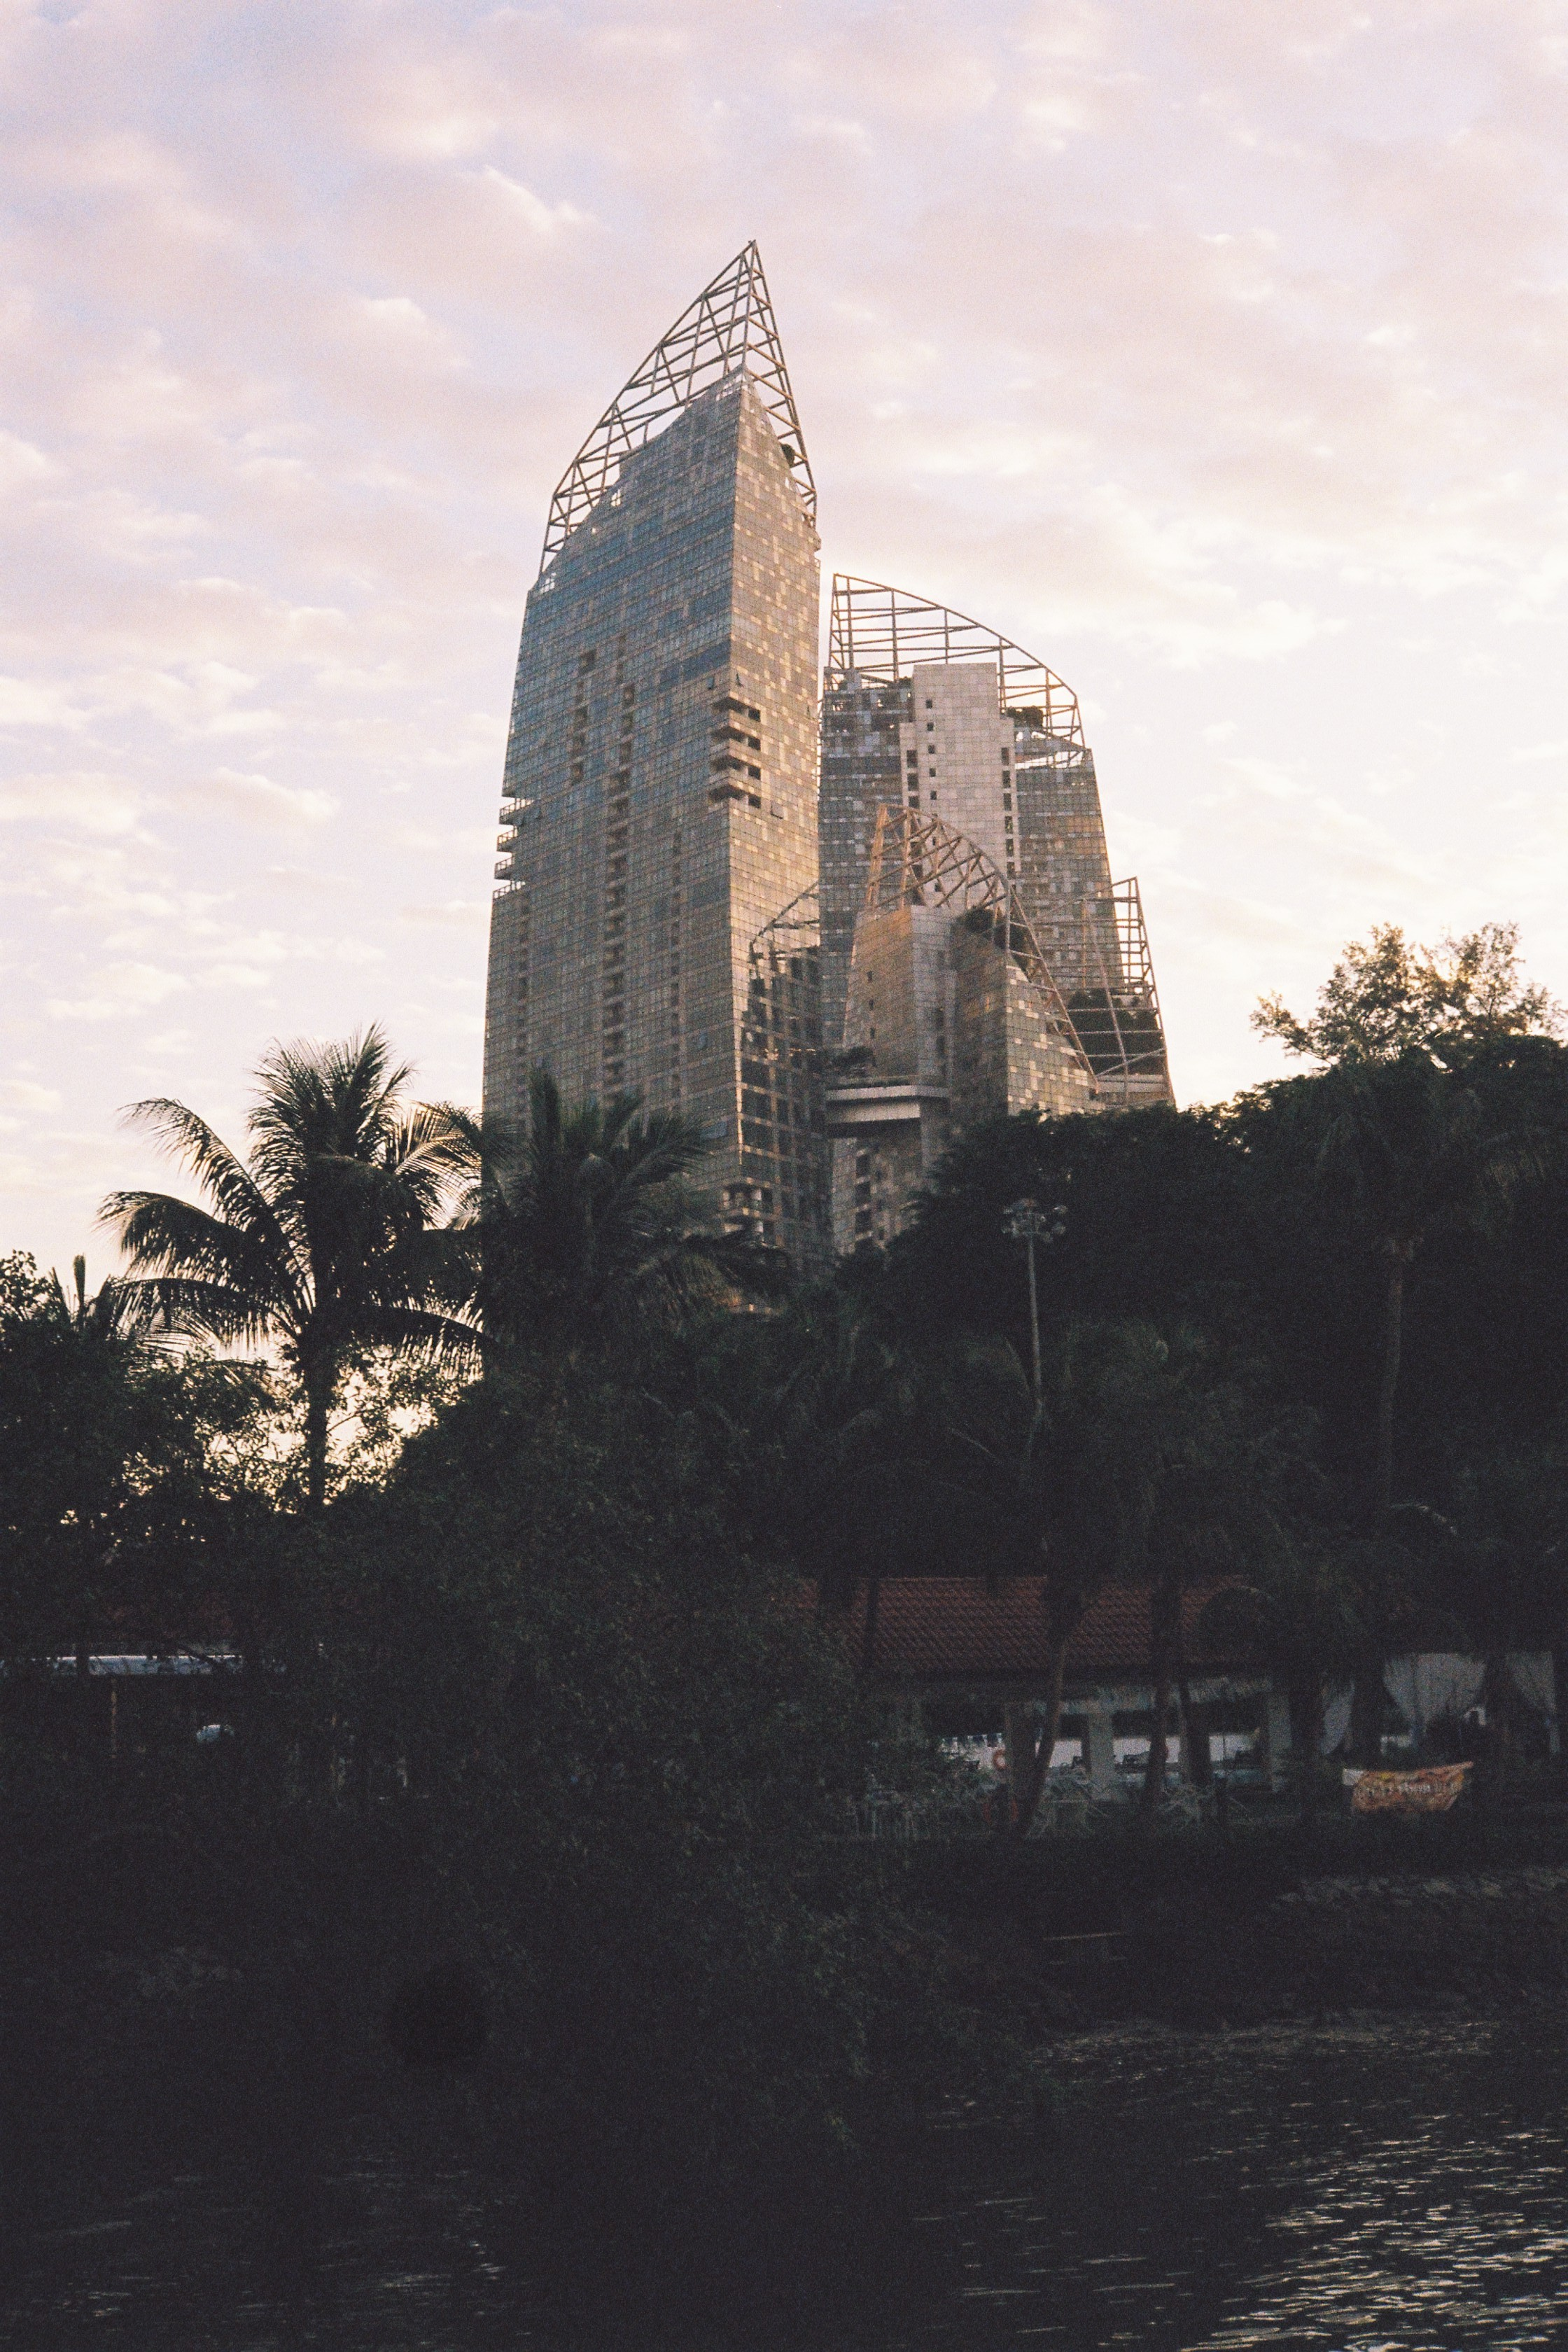 Singapore in the morning.